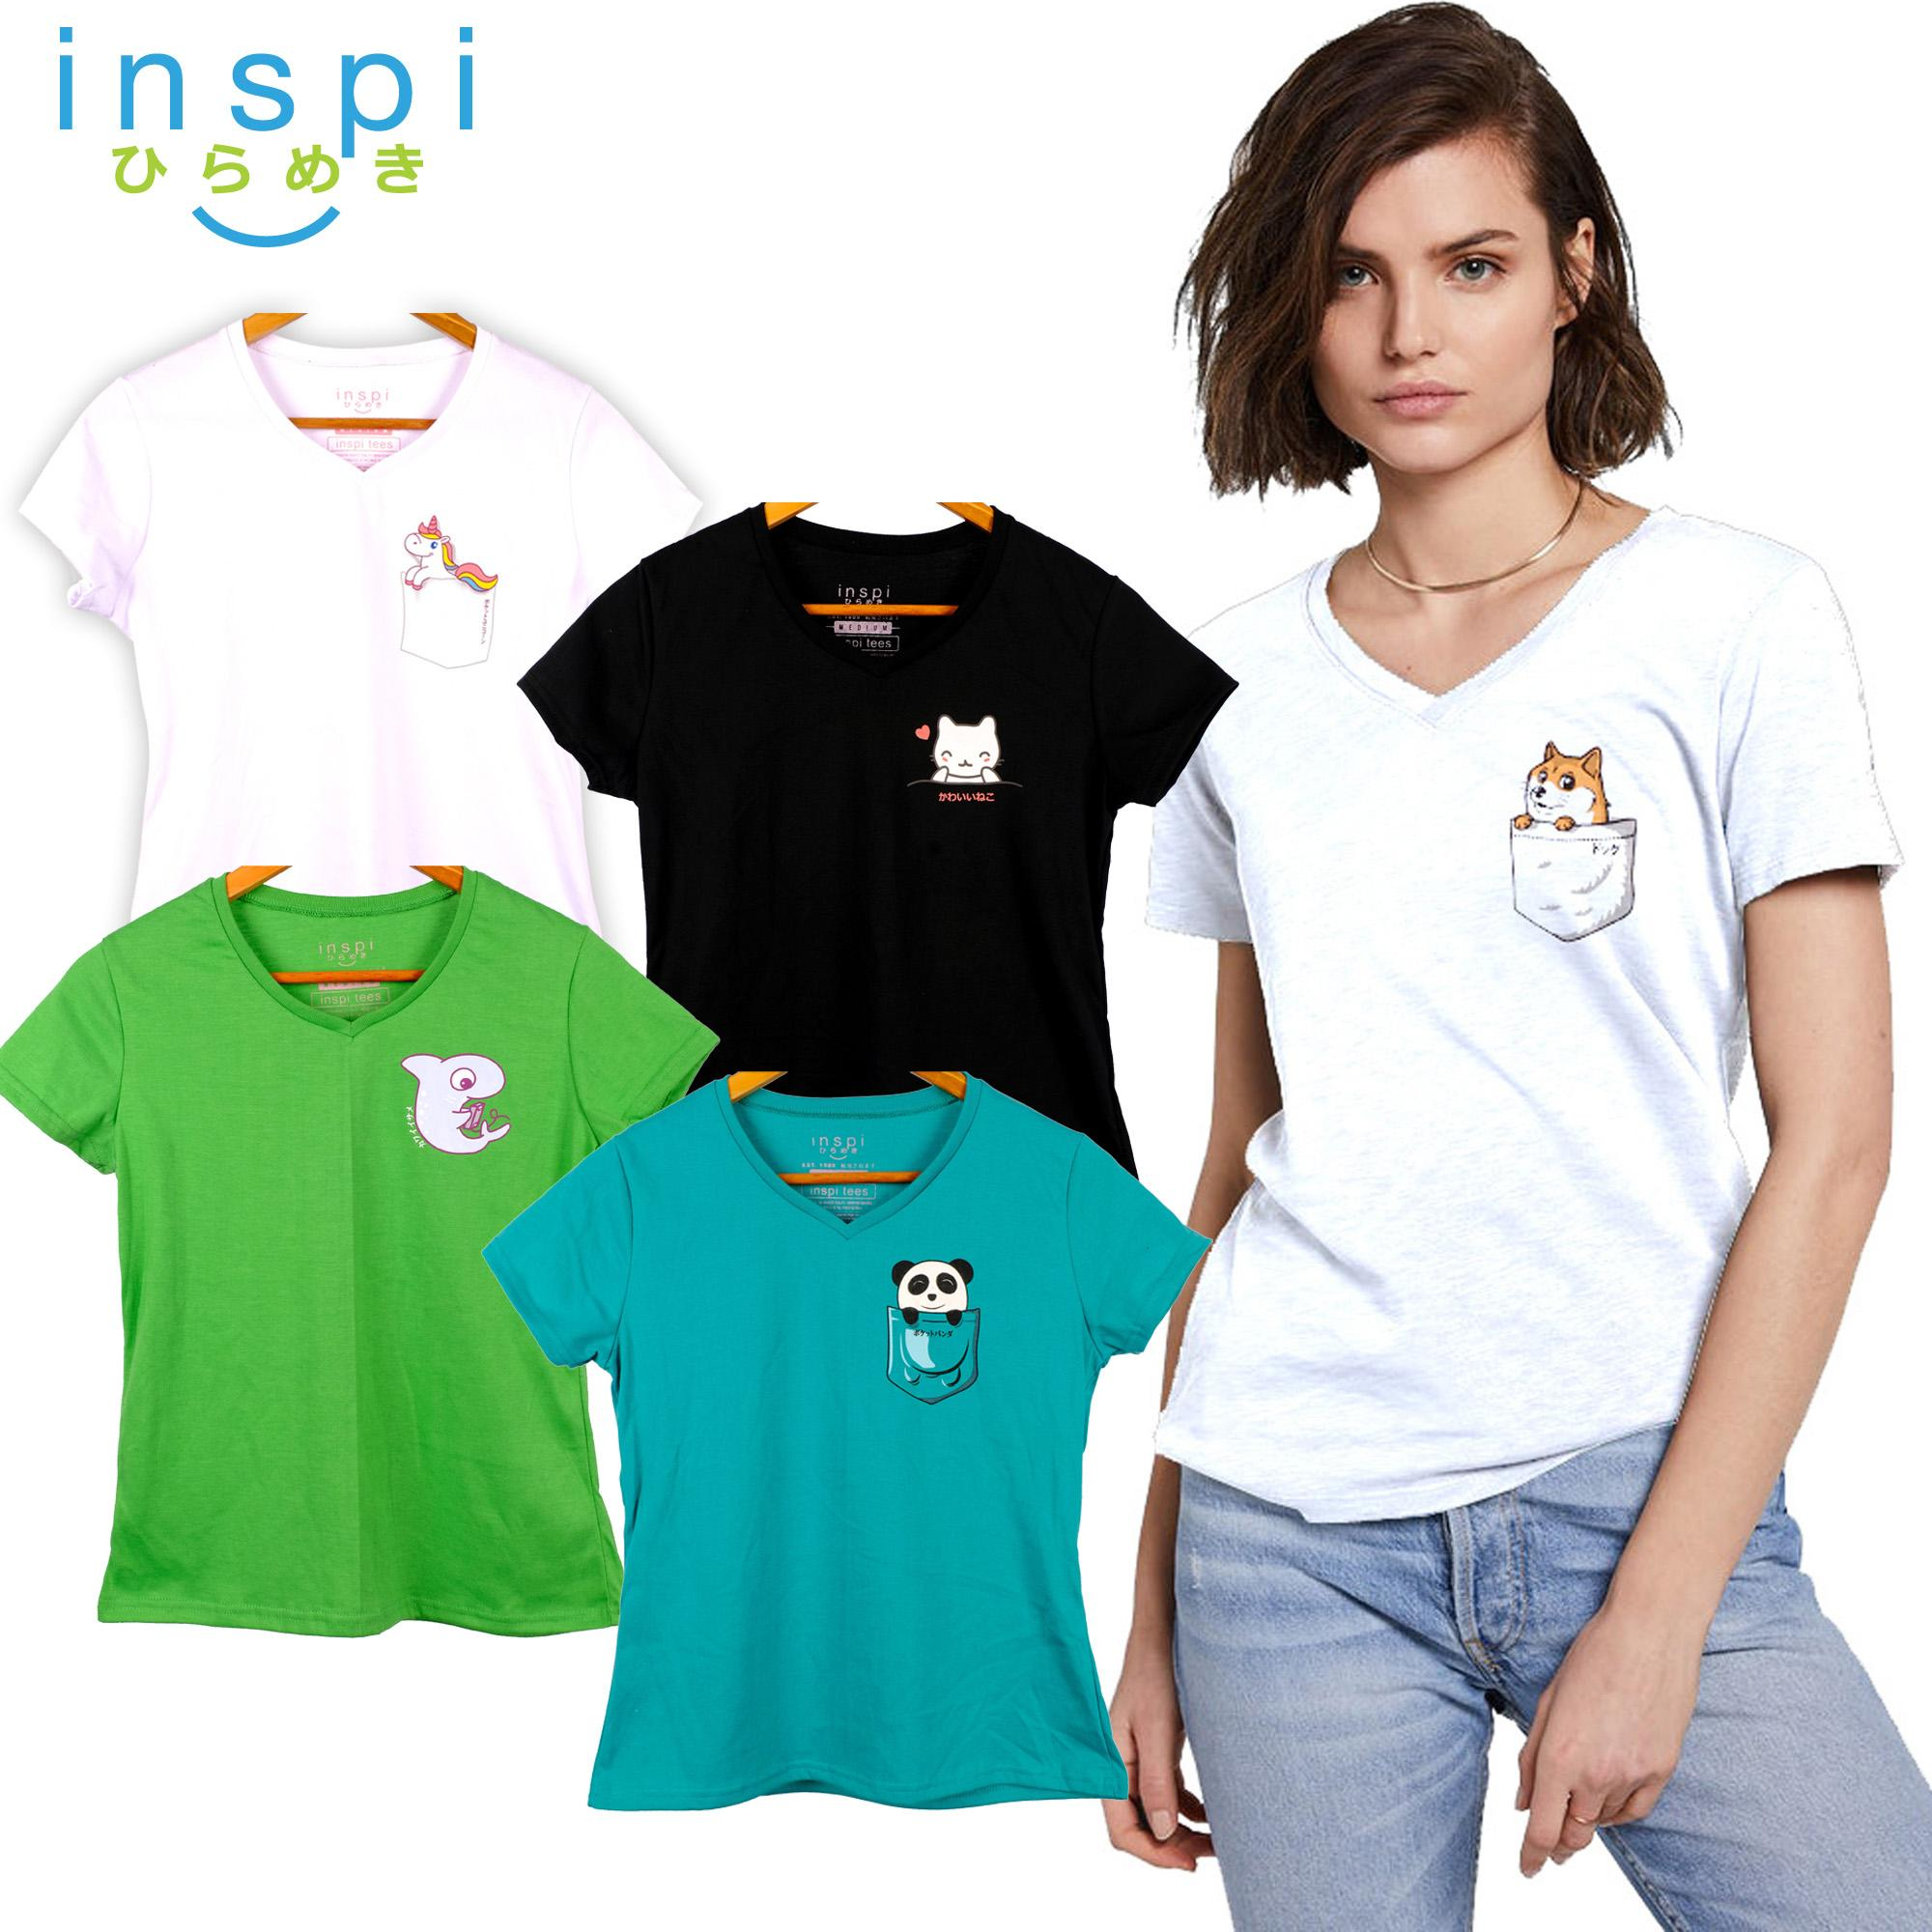 1dae59cb42a4 INSPI Tees Ladies Semi Fit Pocket Friends Collection tshirt printed graphic tee  t shirt shirts tshirts